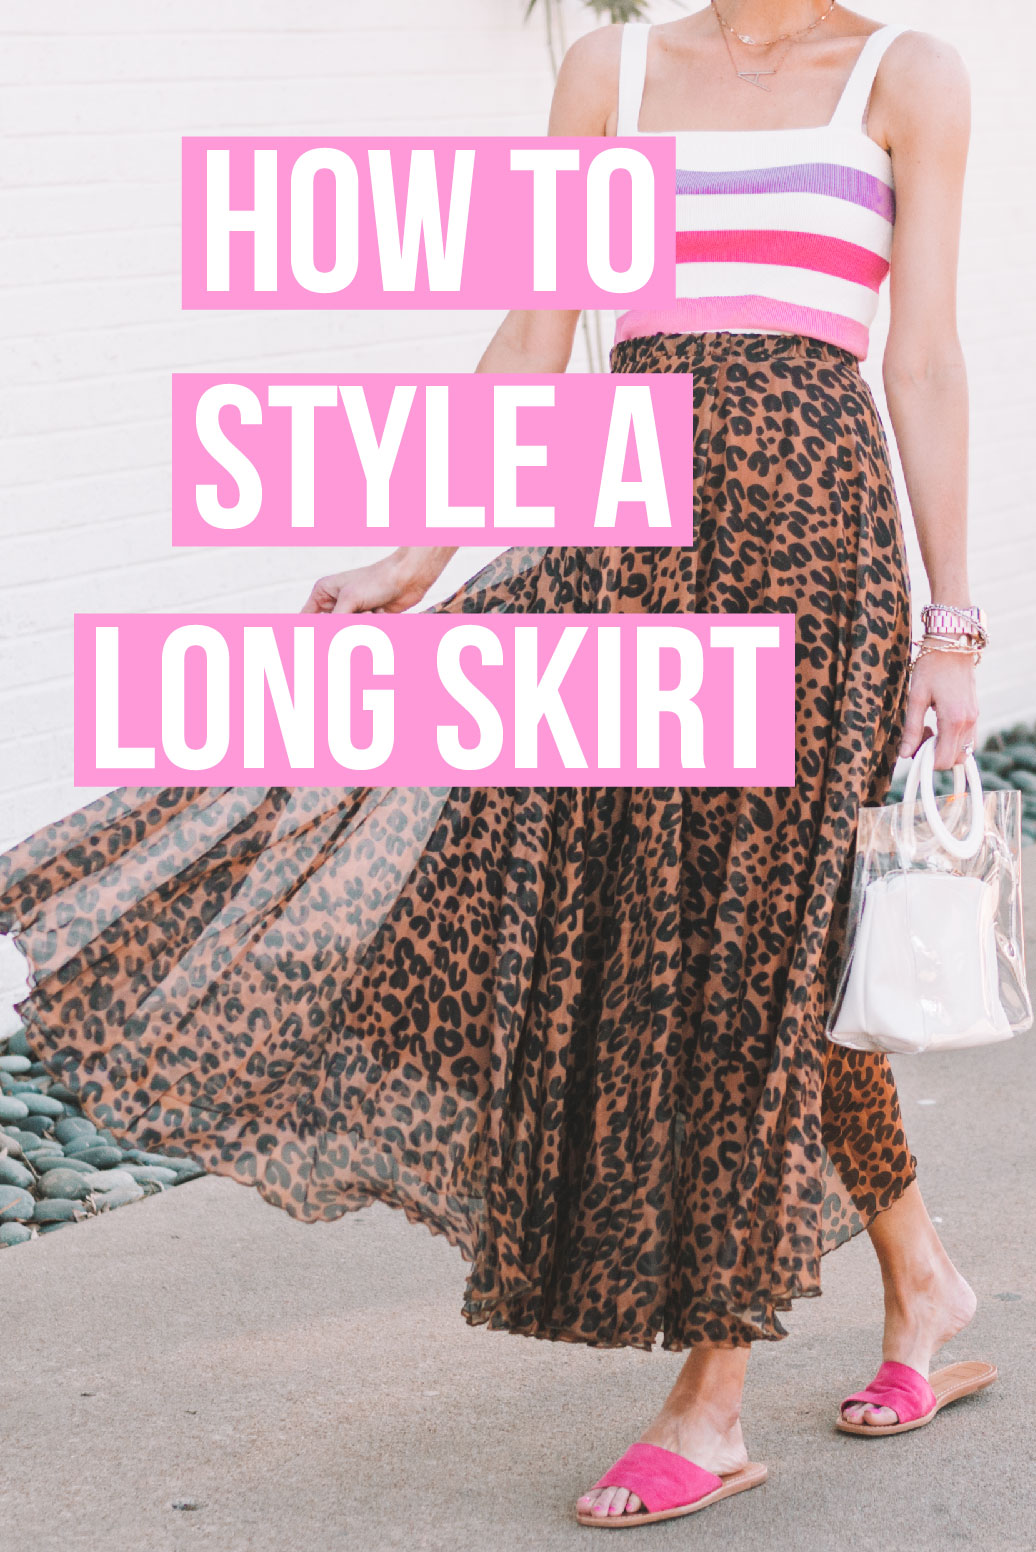 b564da5834 How to Style Long Skirts - Midi or Maxi - Straight A Style